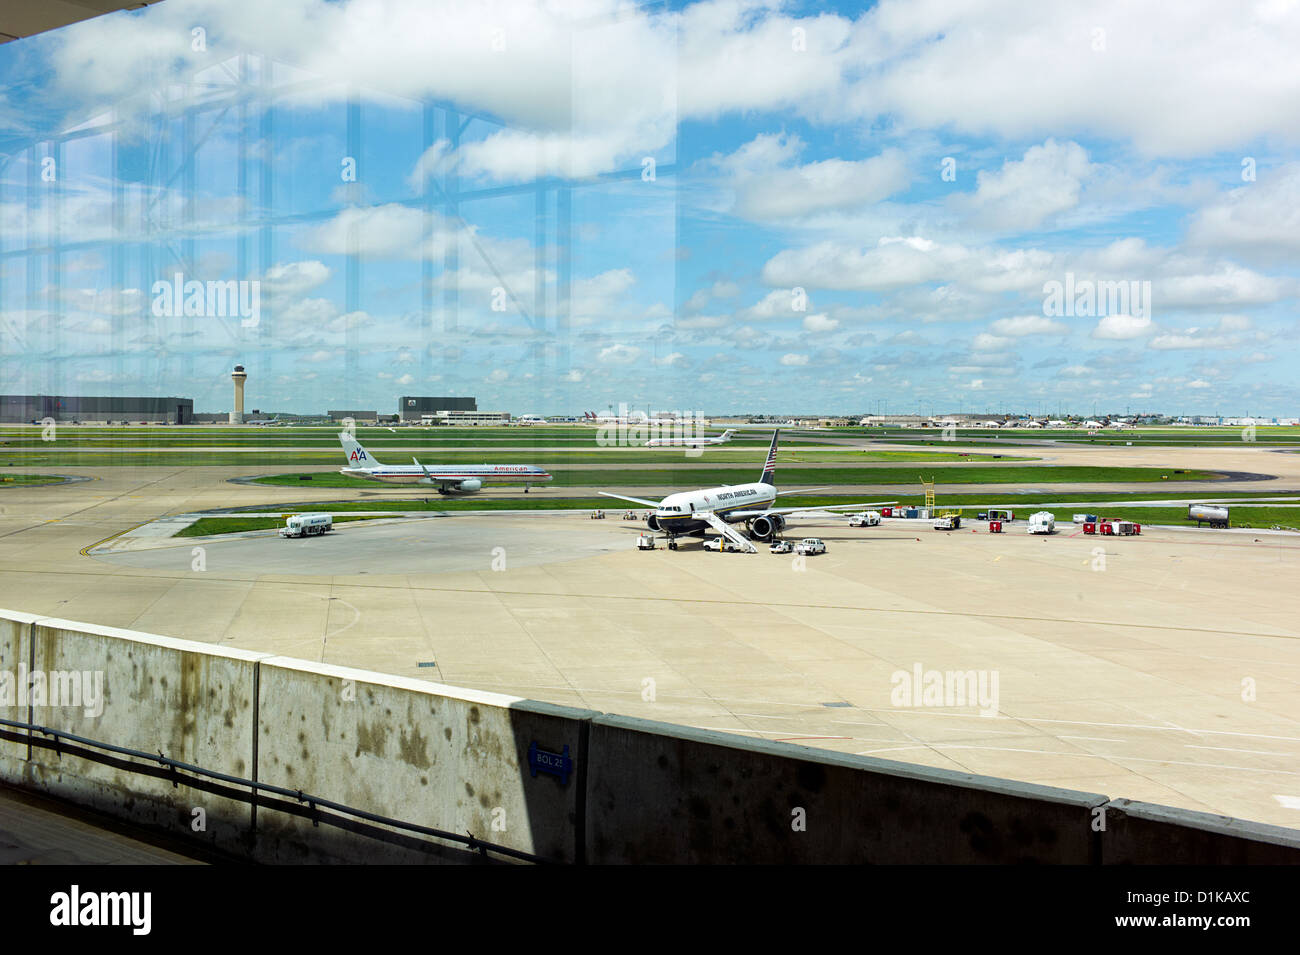 Airplanes taxing on the runway - Stock Image